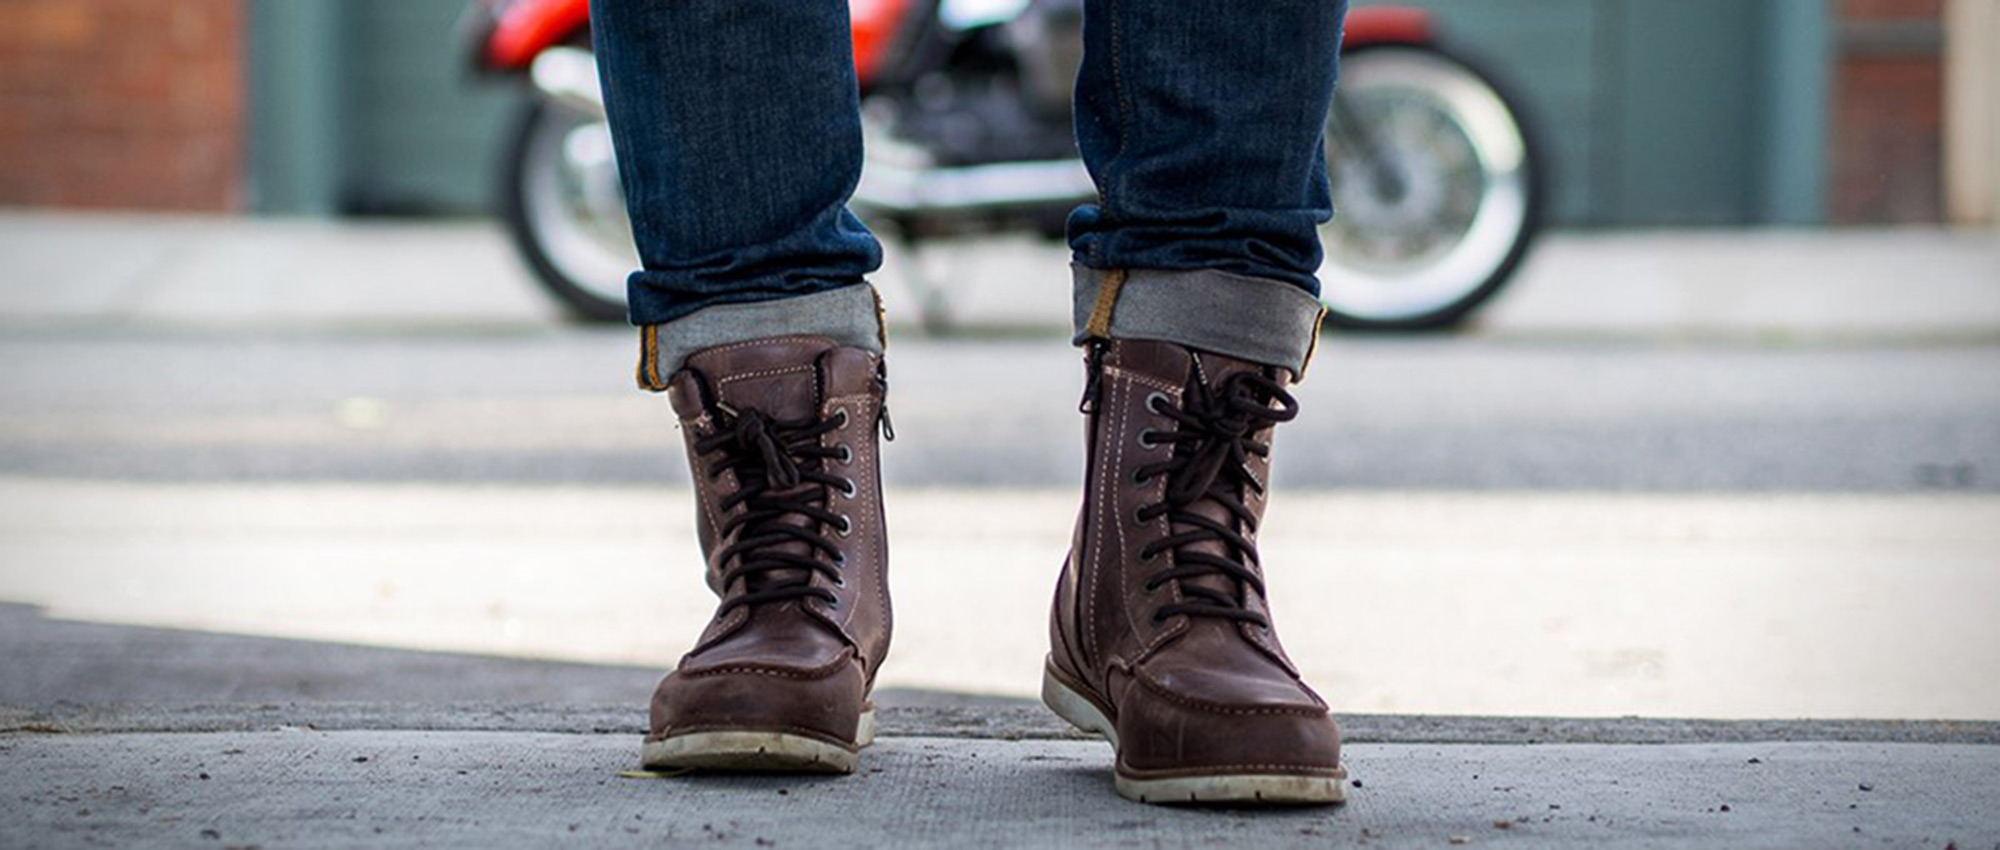 Forma Naxos Boots - Moc Toe Waterproof Motorcycle Boots